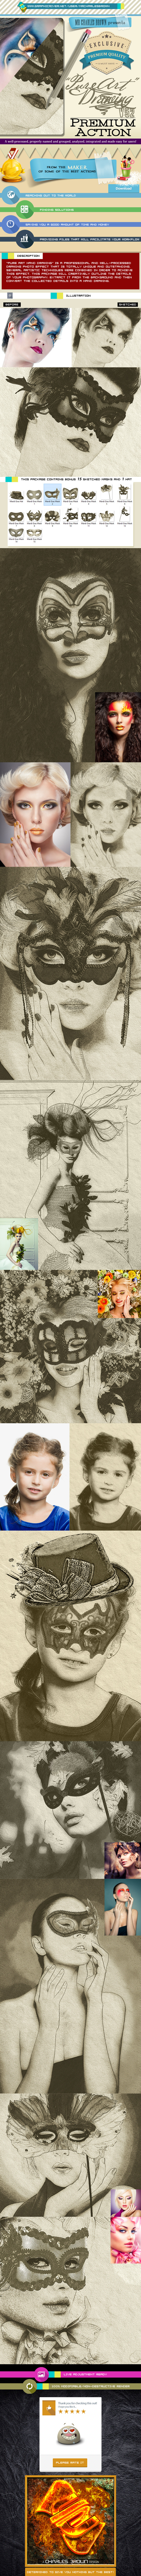 Pure Art Hand Drawing 52 – Mardi Gras Sketch - Photo Effects Actions